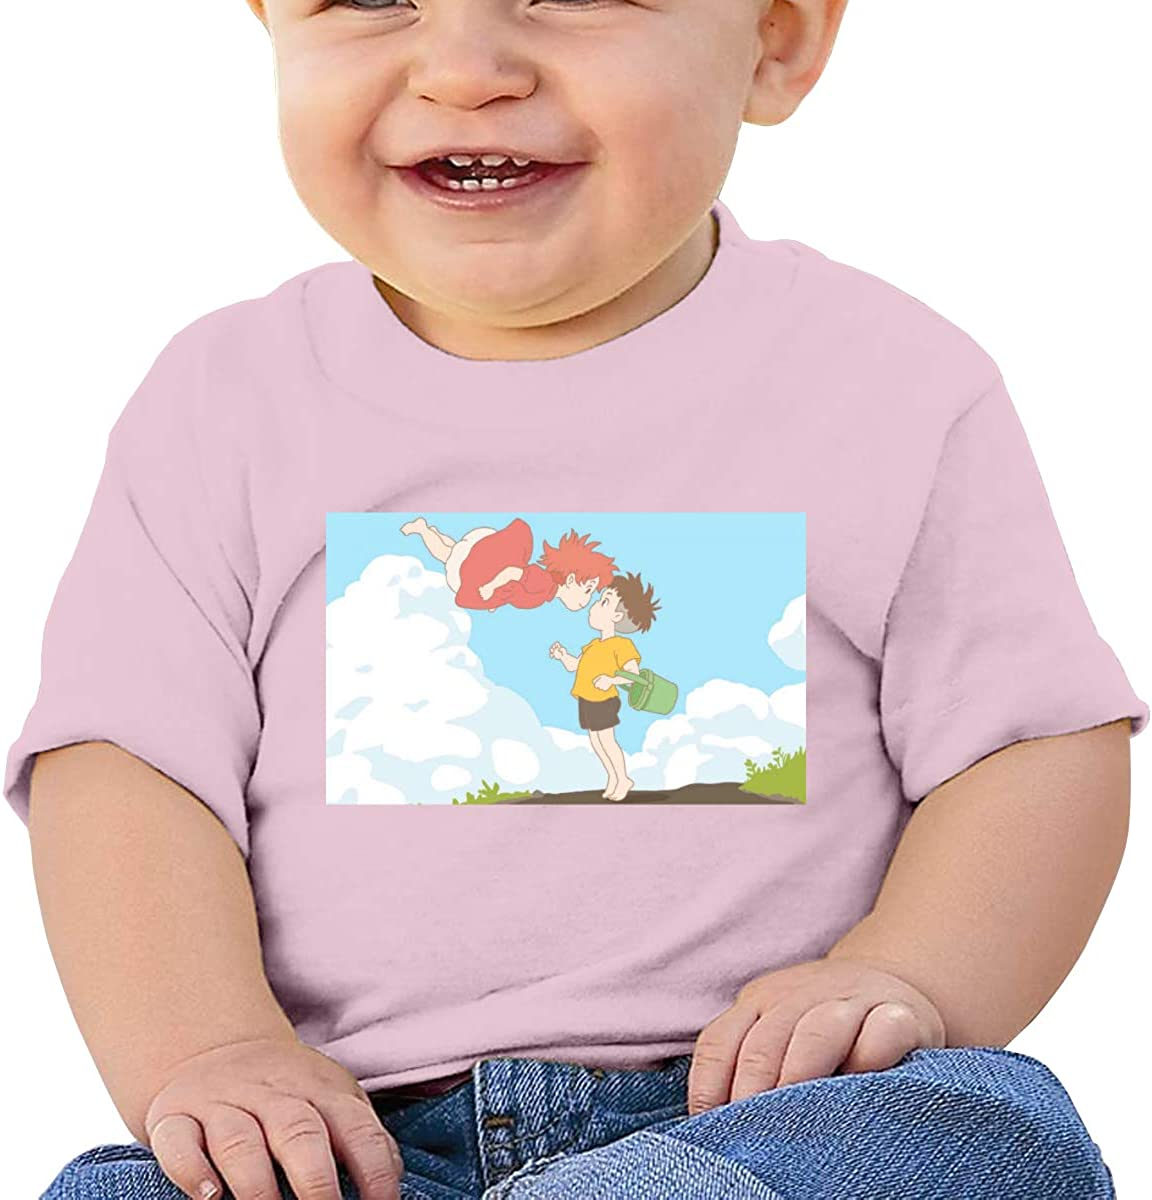 EVE JOHN Ponyo On The Cliff Tee Breathable T Shirt for Baby Boy Black